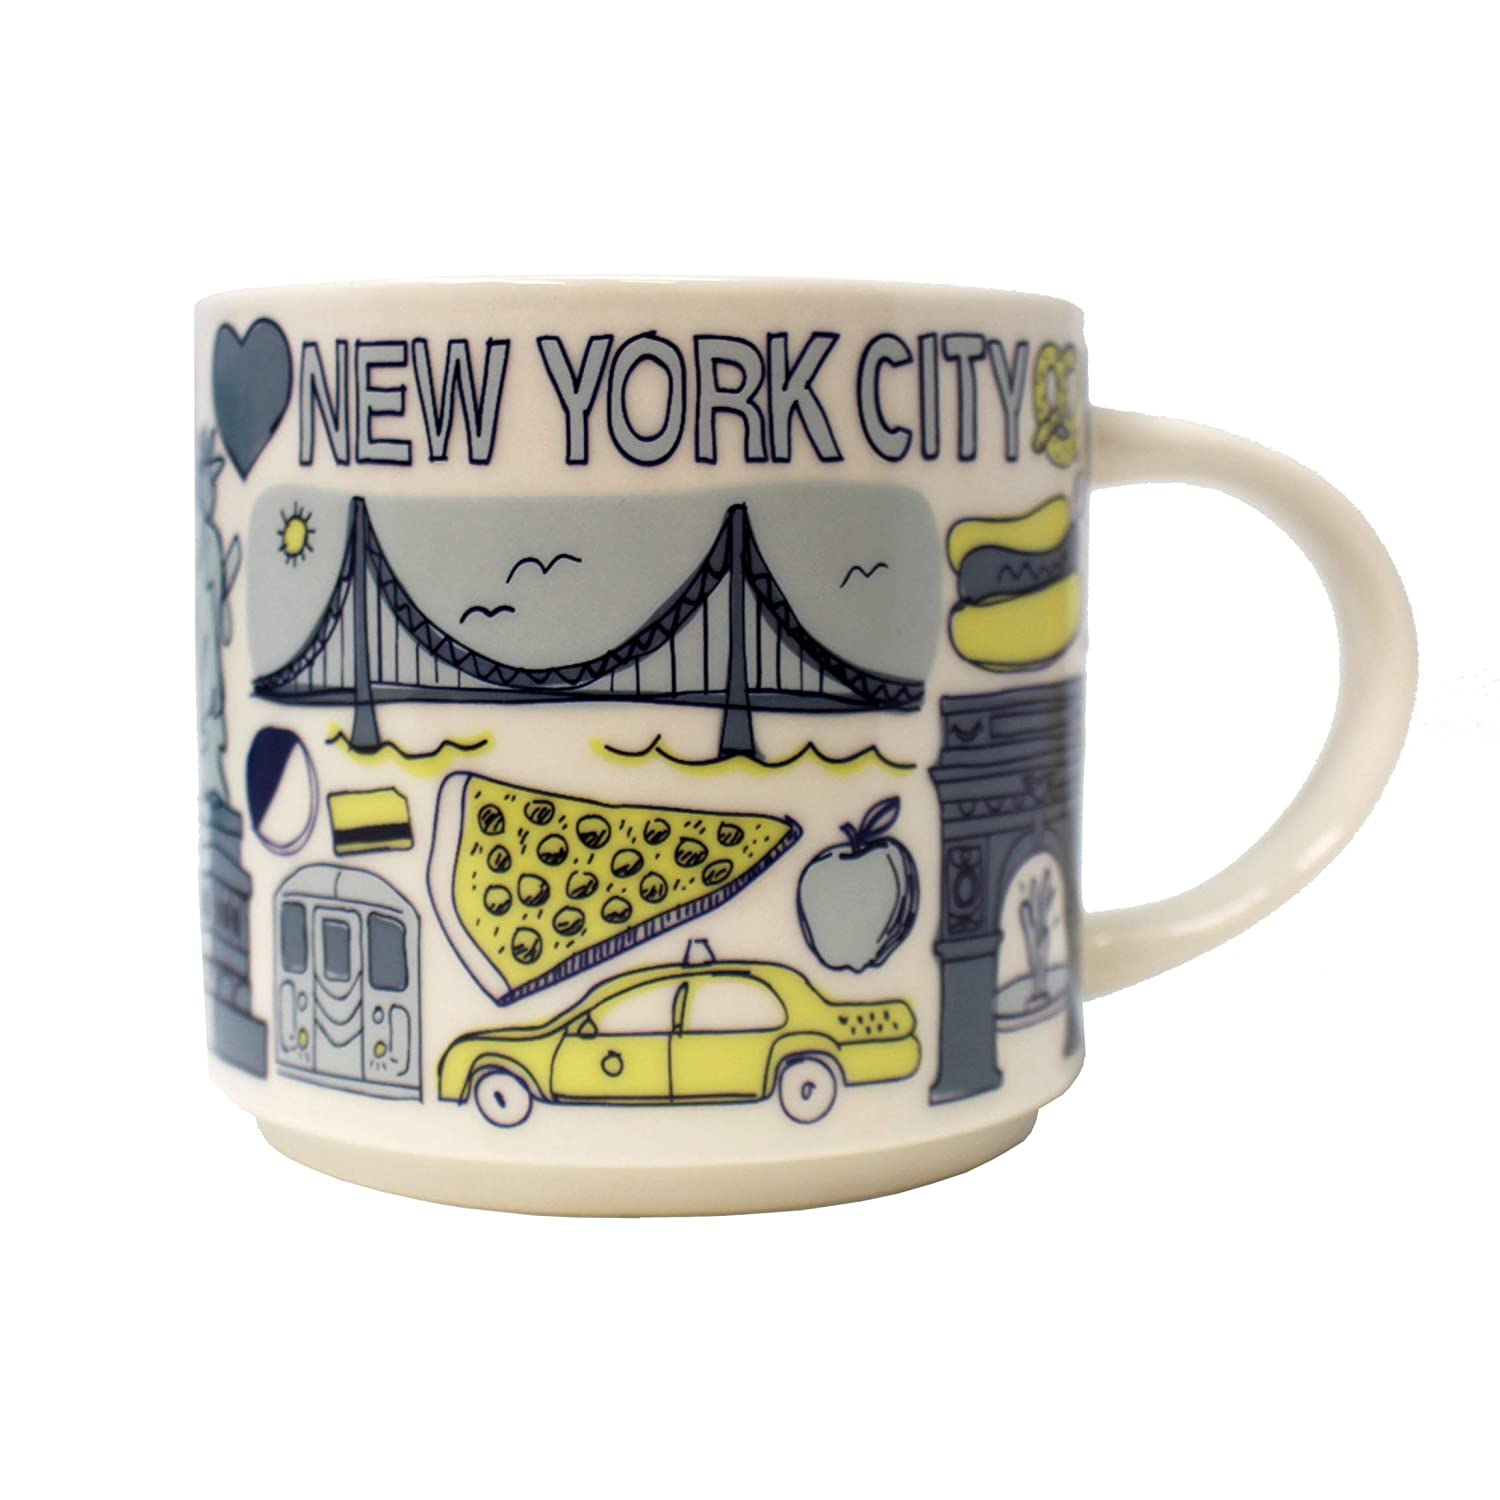 Starbucks Been There Mug - New York City, 14 FL Oz (011086601)